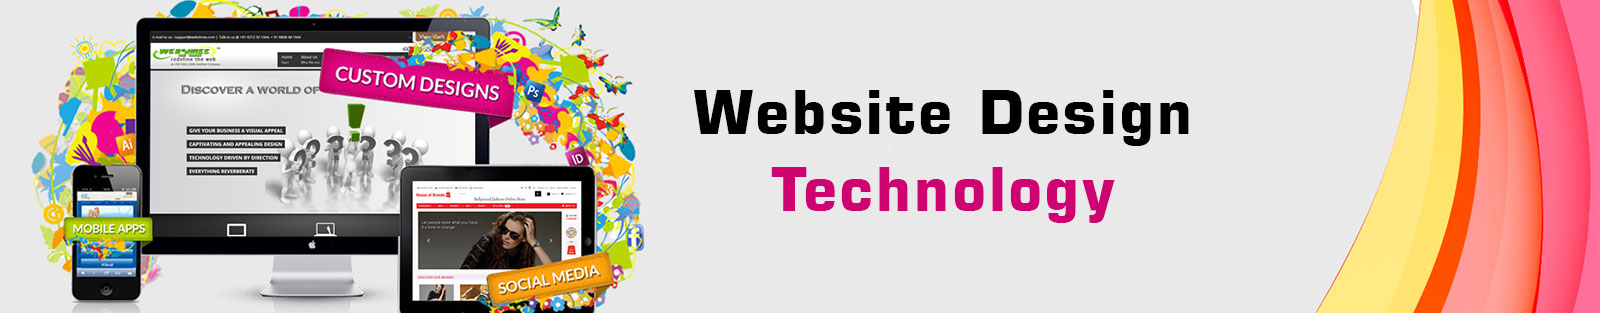 Web Design Technology